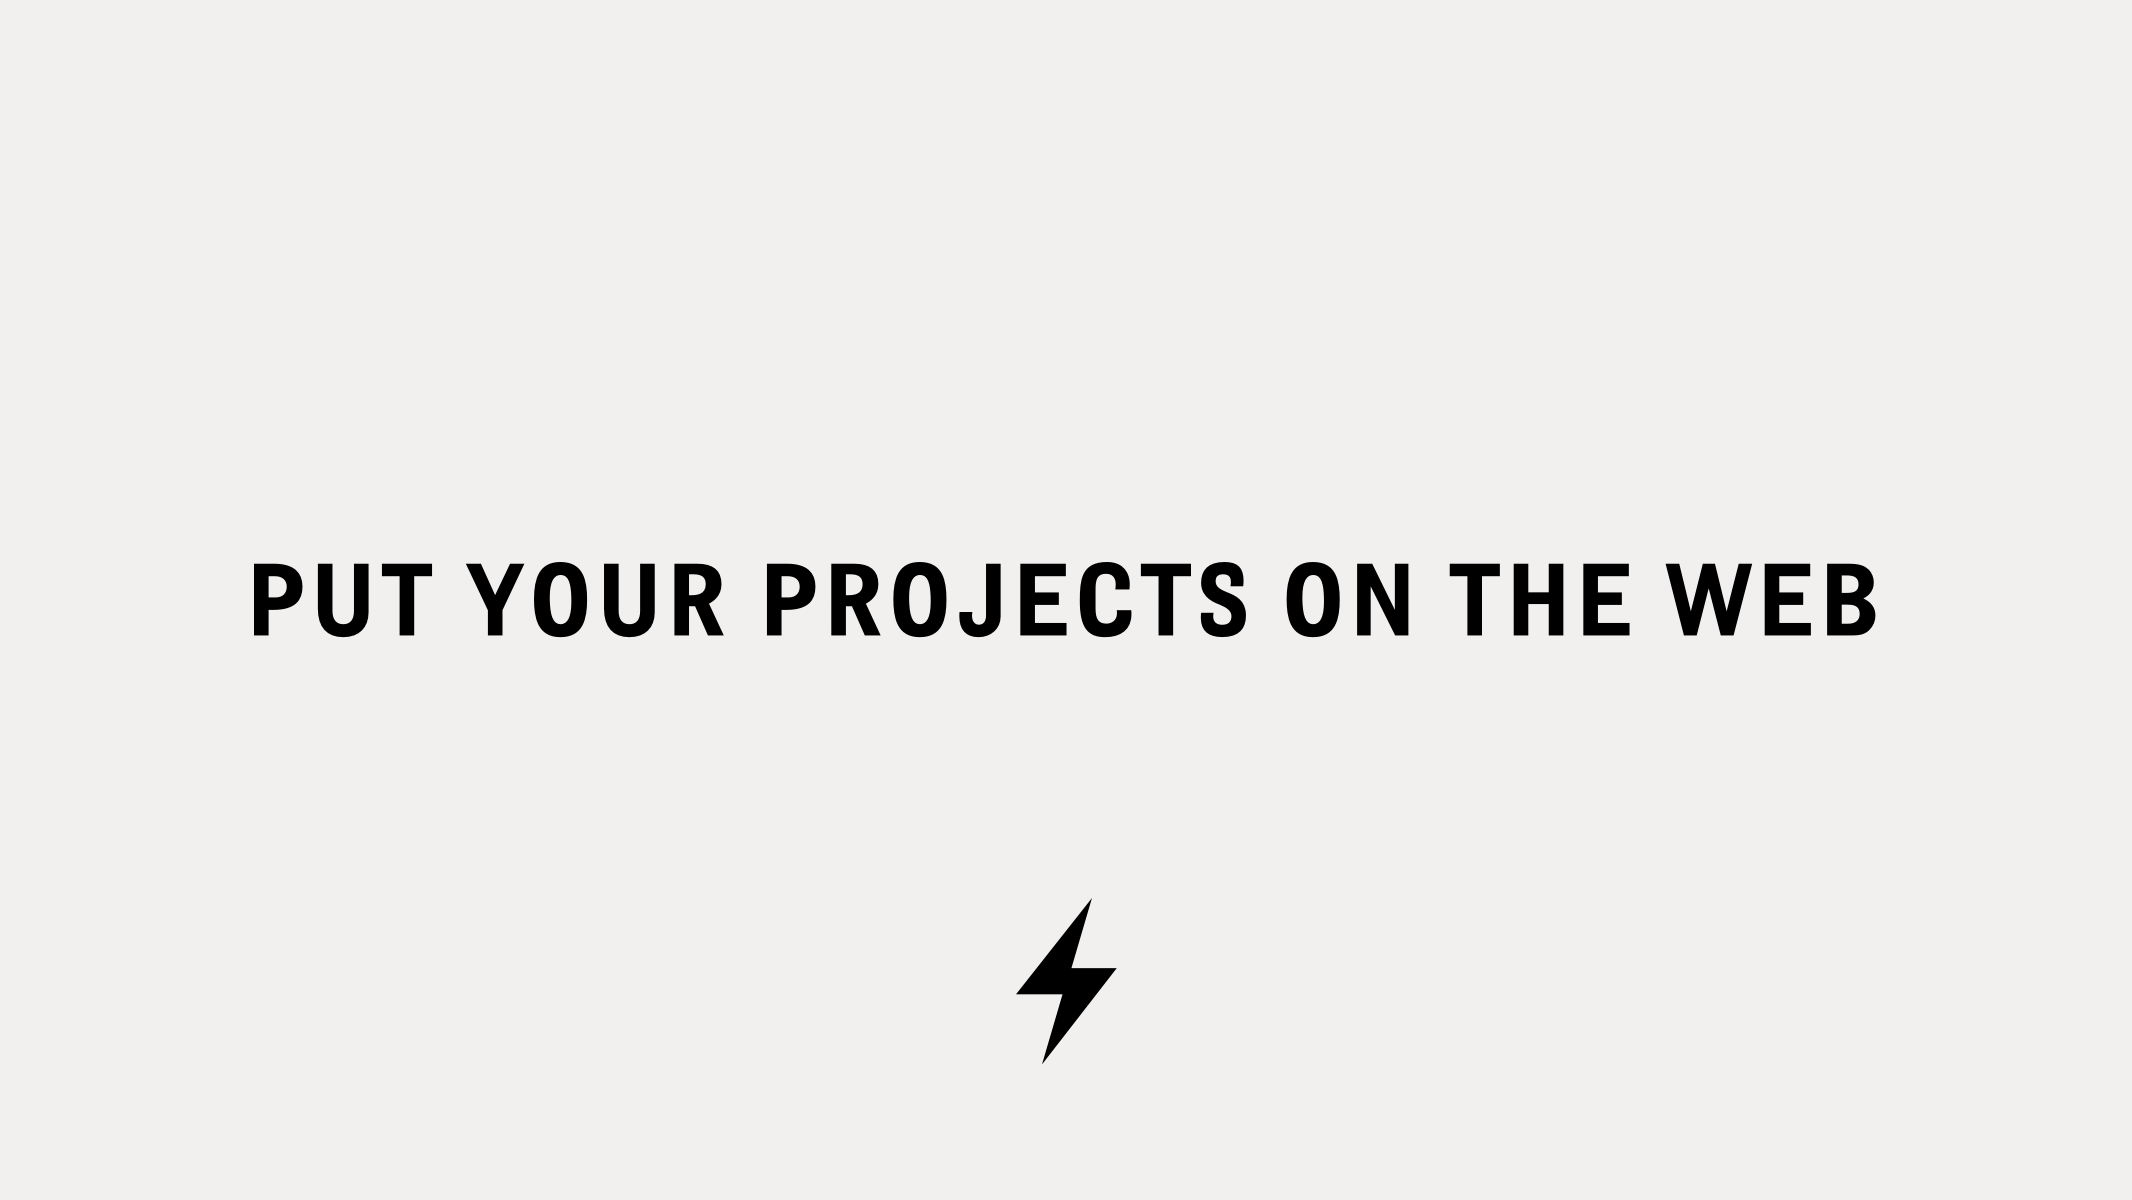 Put your projects on the Web